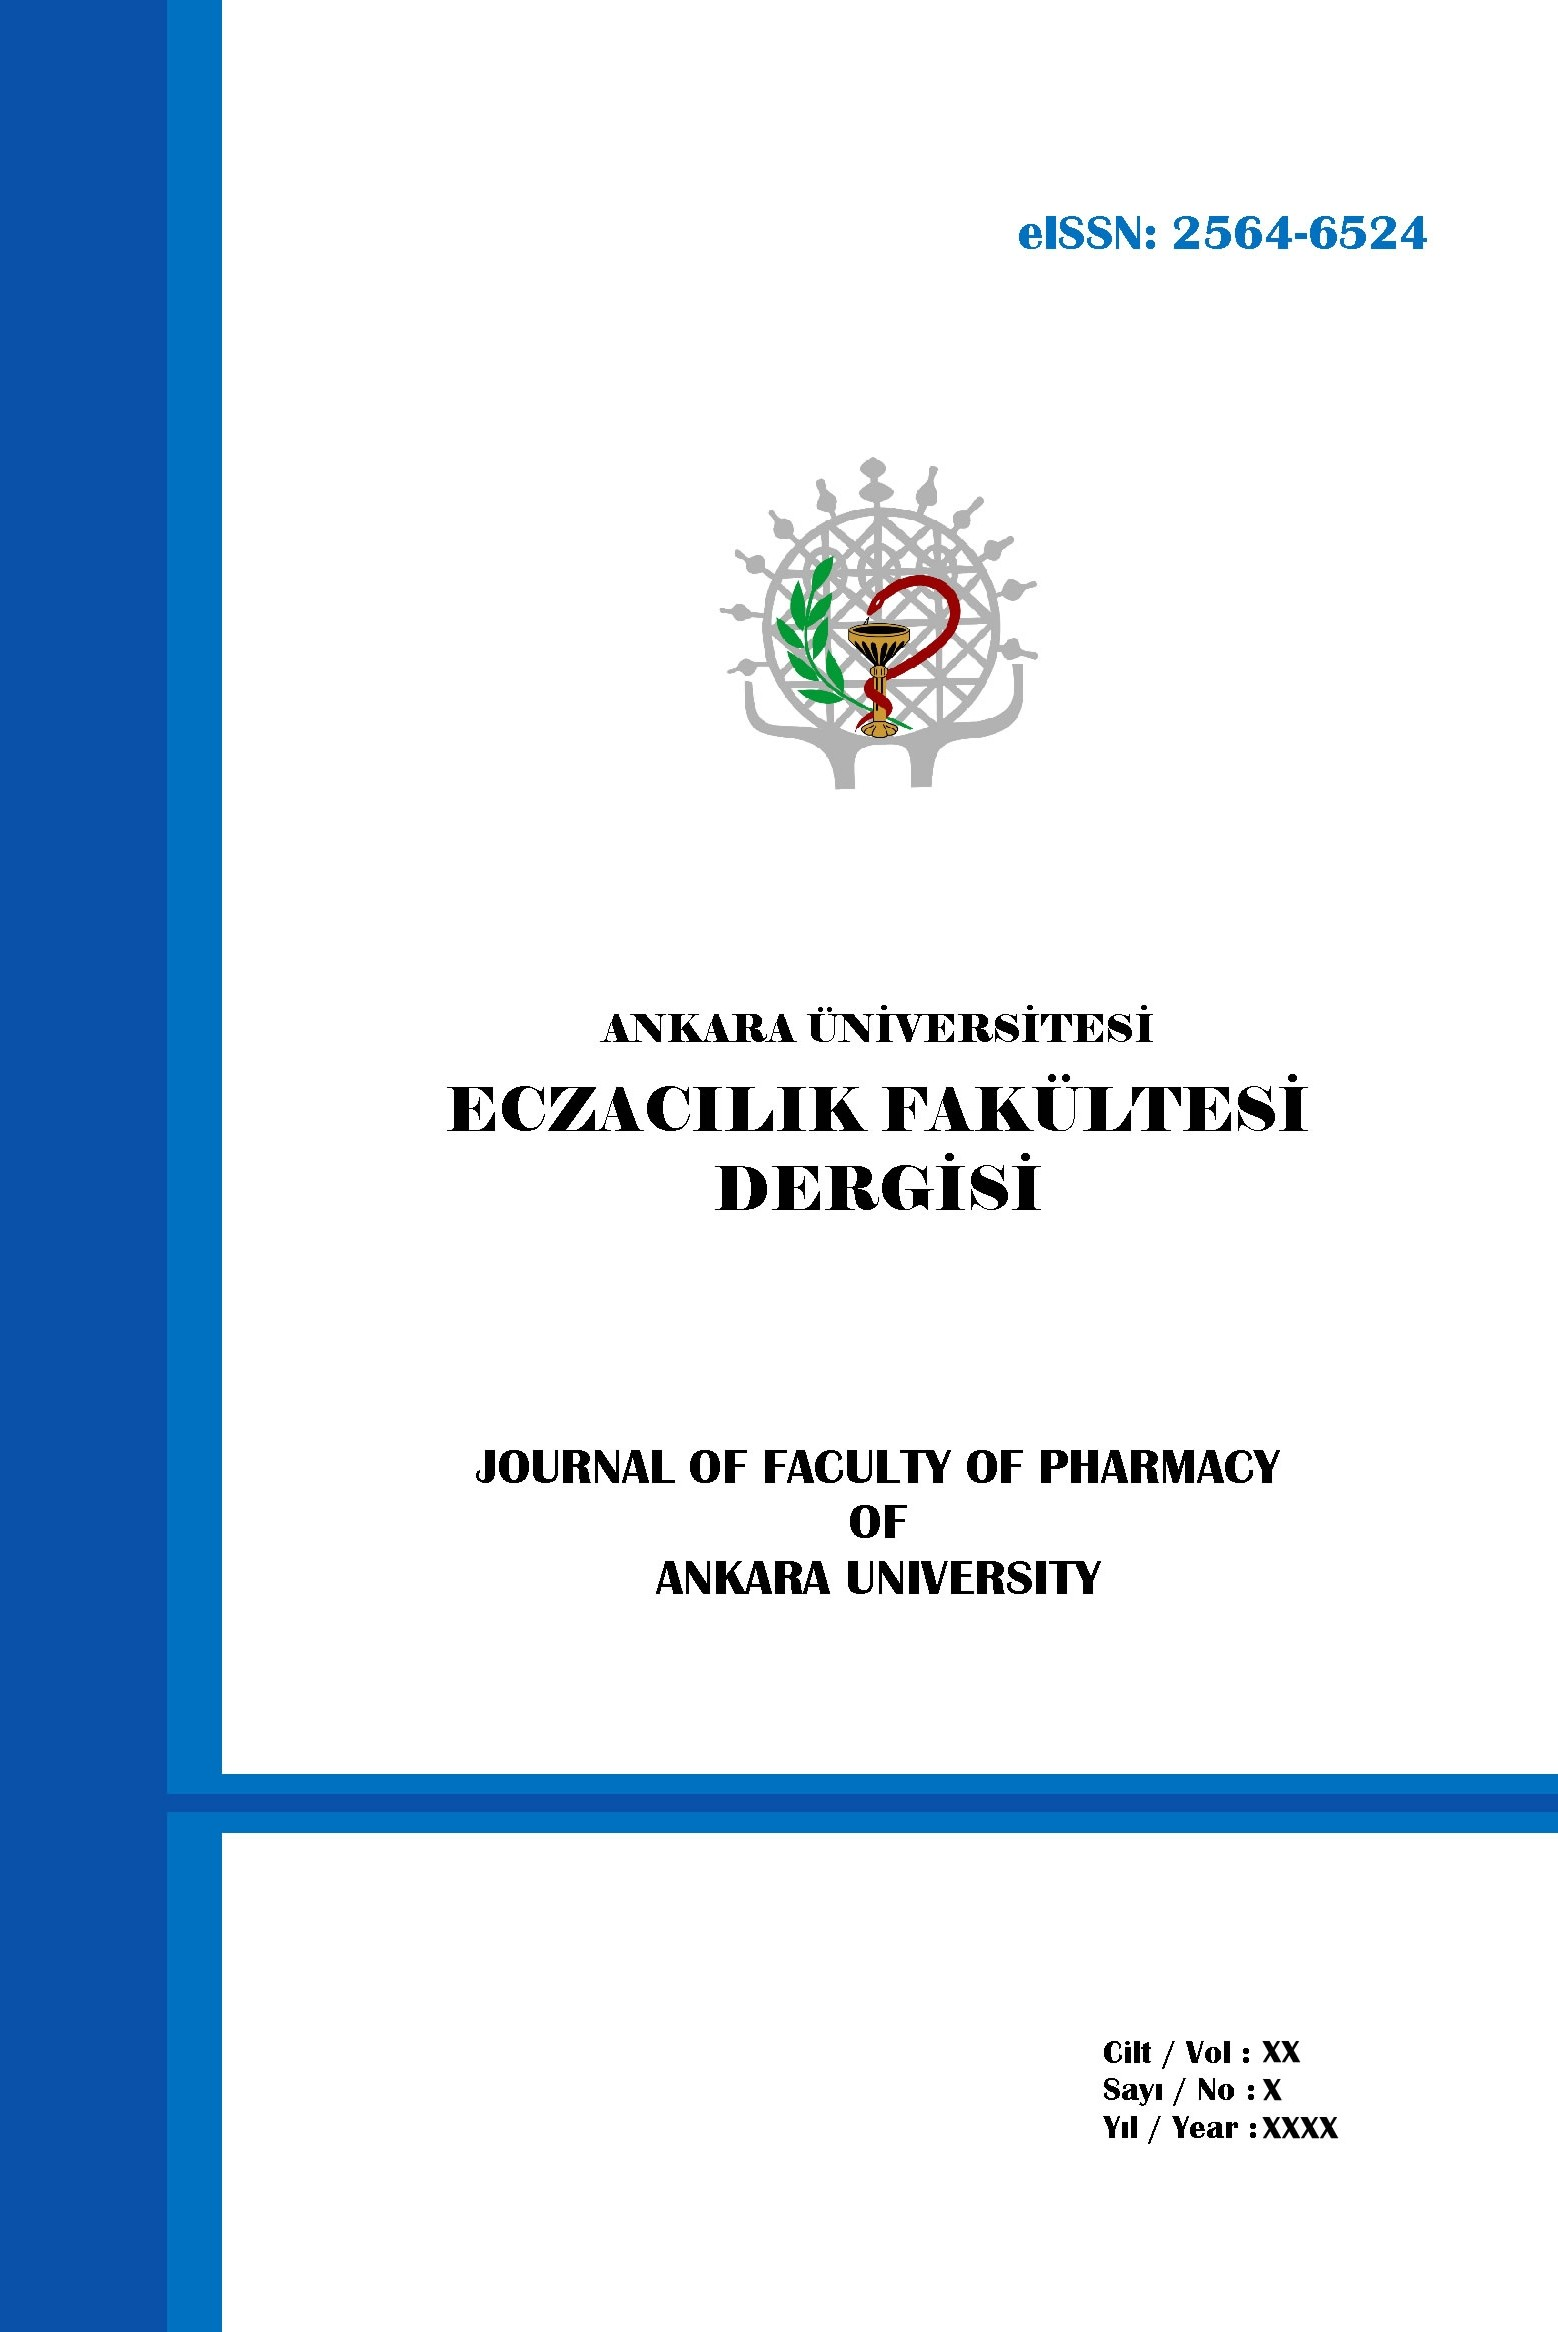 Journal of Faculty of Pharmacy of Ankara University